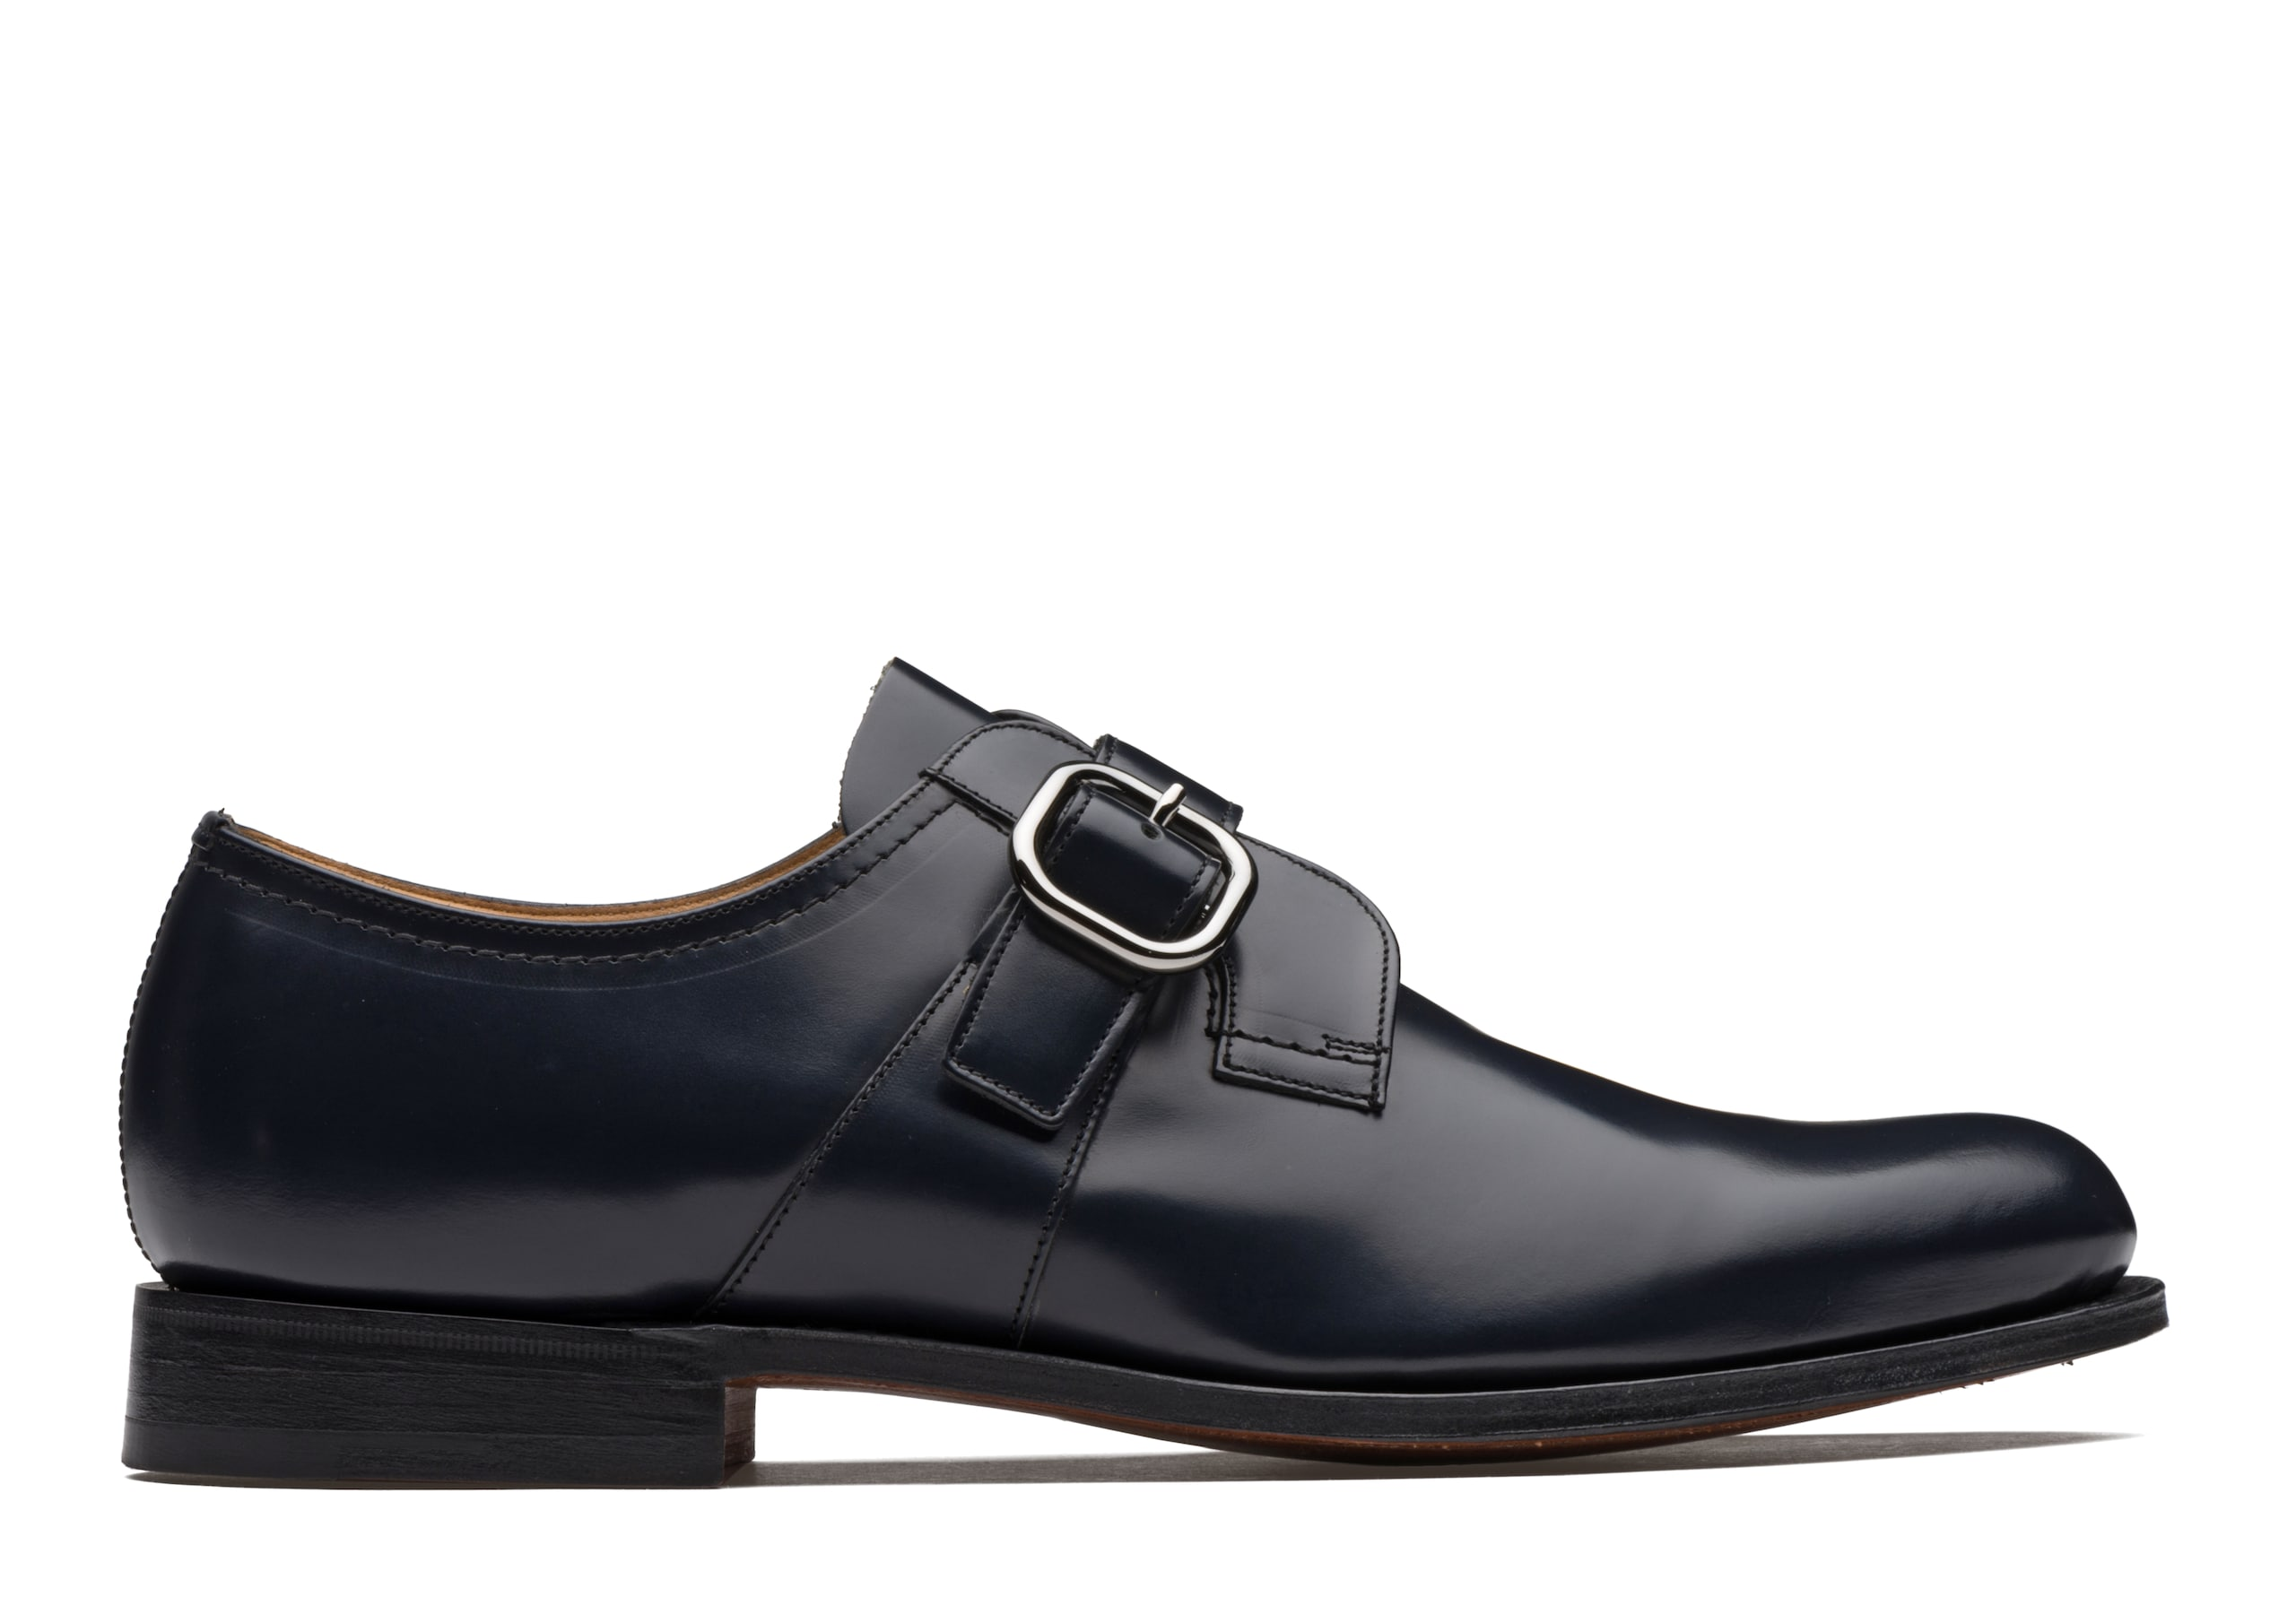 Baycliff Church's Polished Binder Monk Strap Black Blue